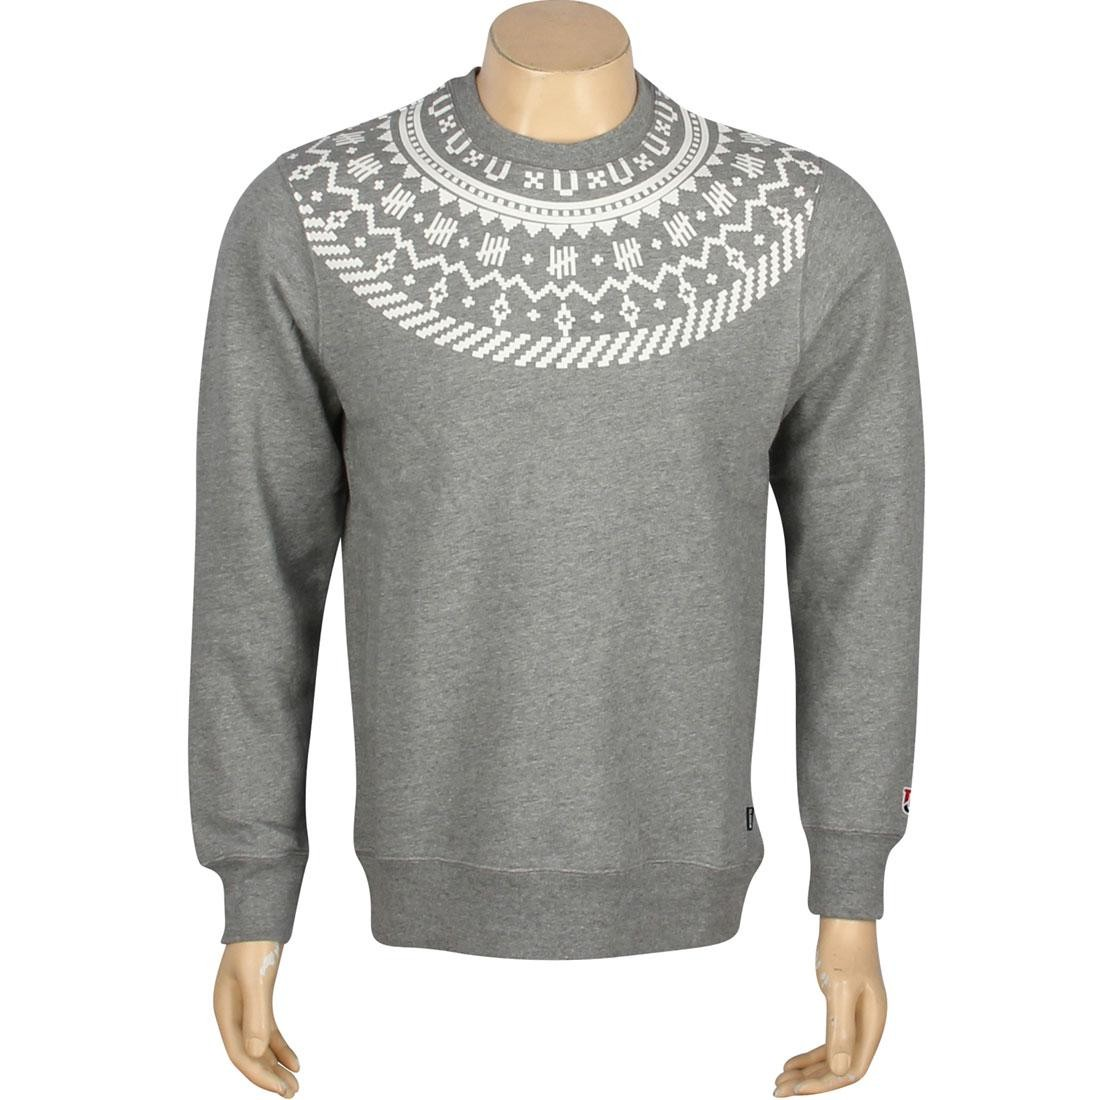 Undefeated Traverse Crewneck (gray / grey heather)